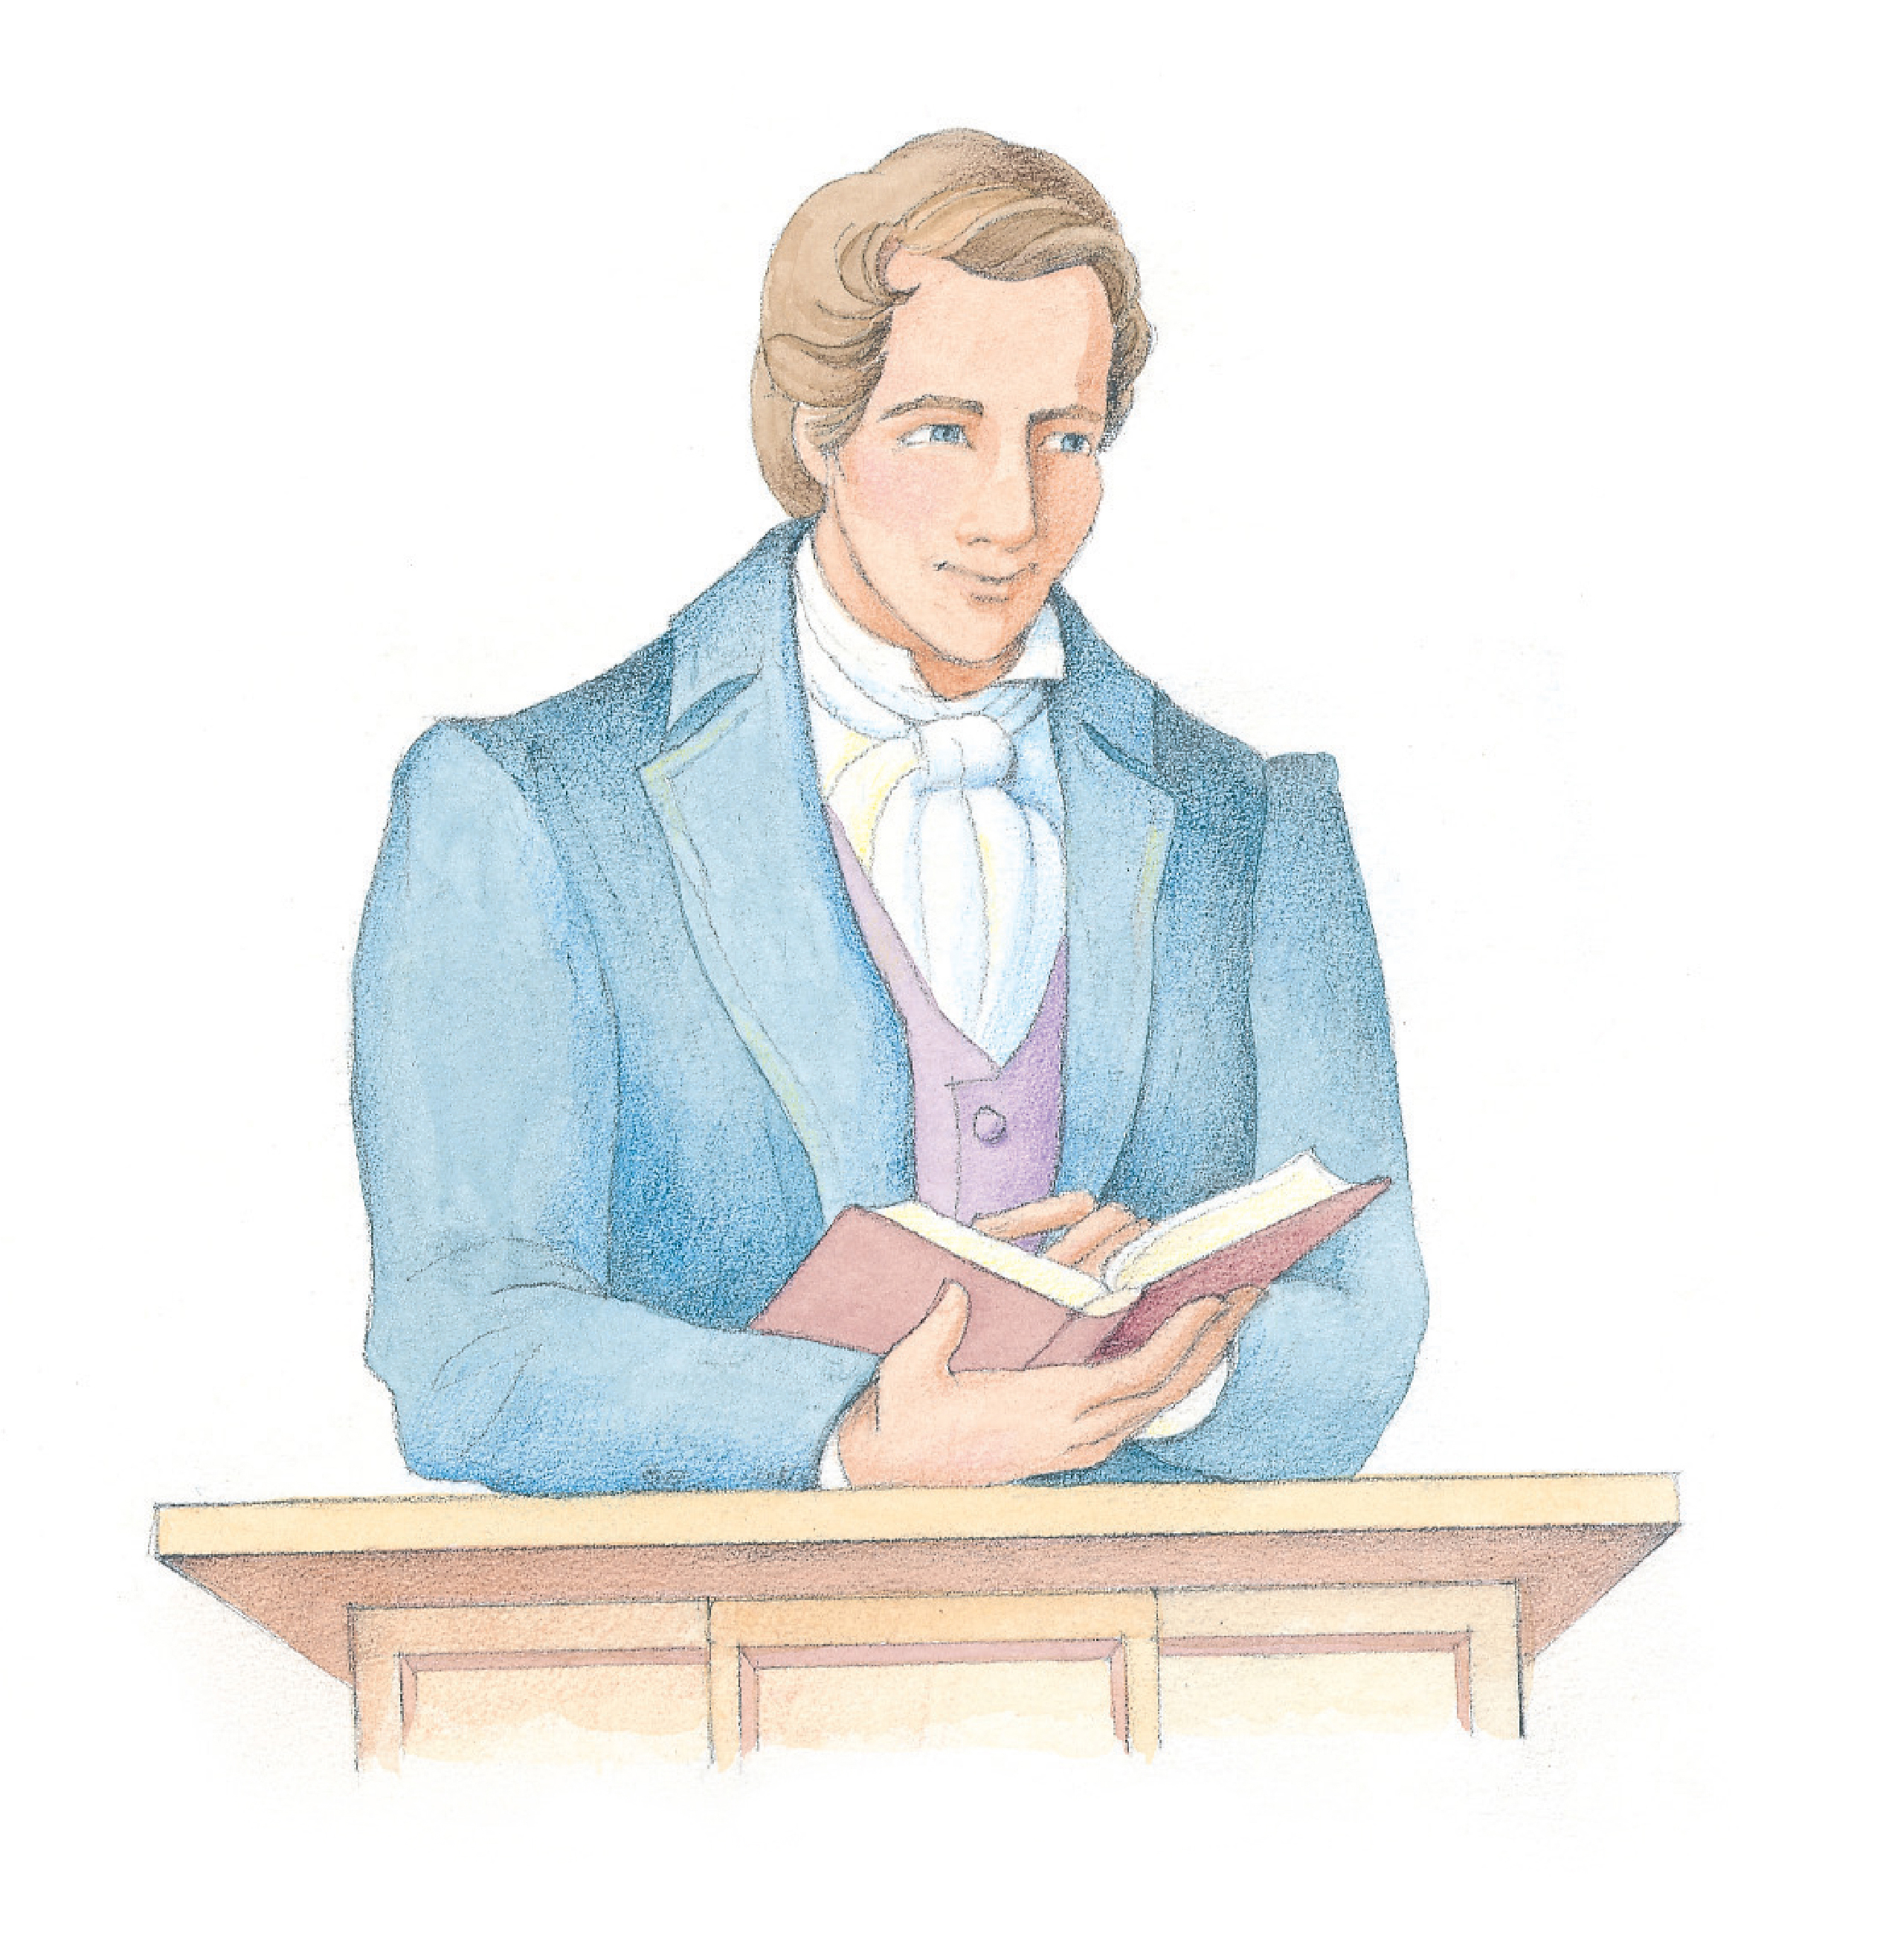 """Joseph Smith standing at a podium with a book in hand. From the Children's Songbook, page 159, """"Stand for the Right""""; watercolor illustration by Phyllis Luch."""